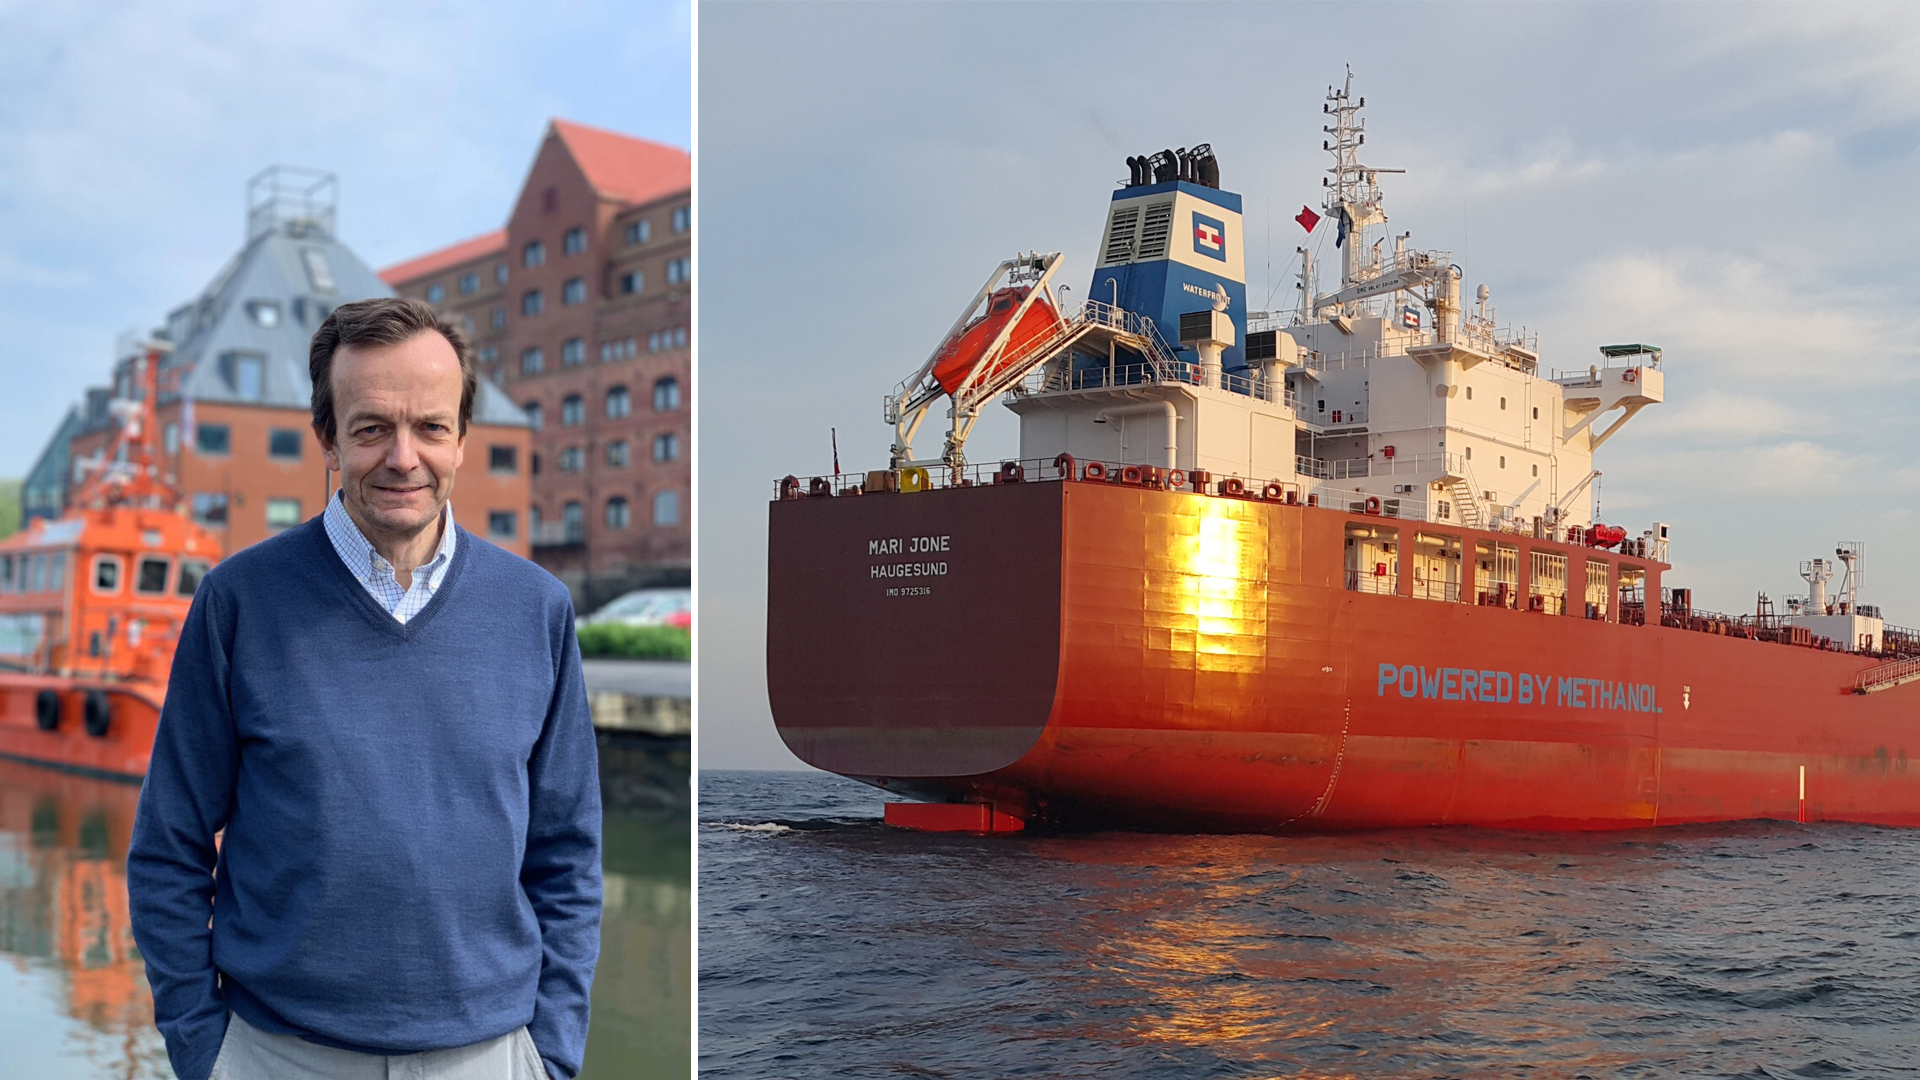 E-methanol has many benefits for decarbonizing the shipping sector, but there are still some hurdles to overcome.